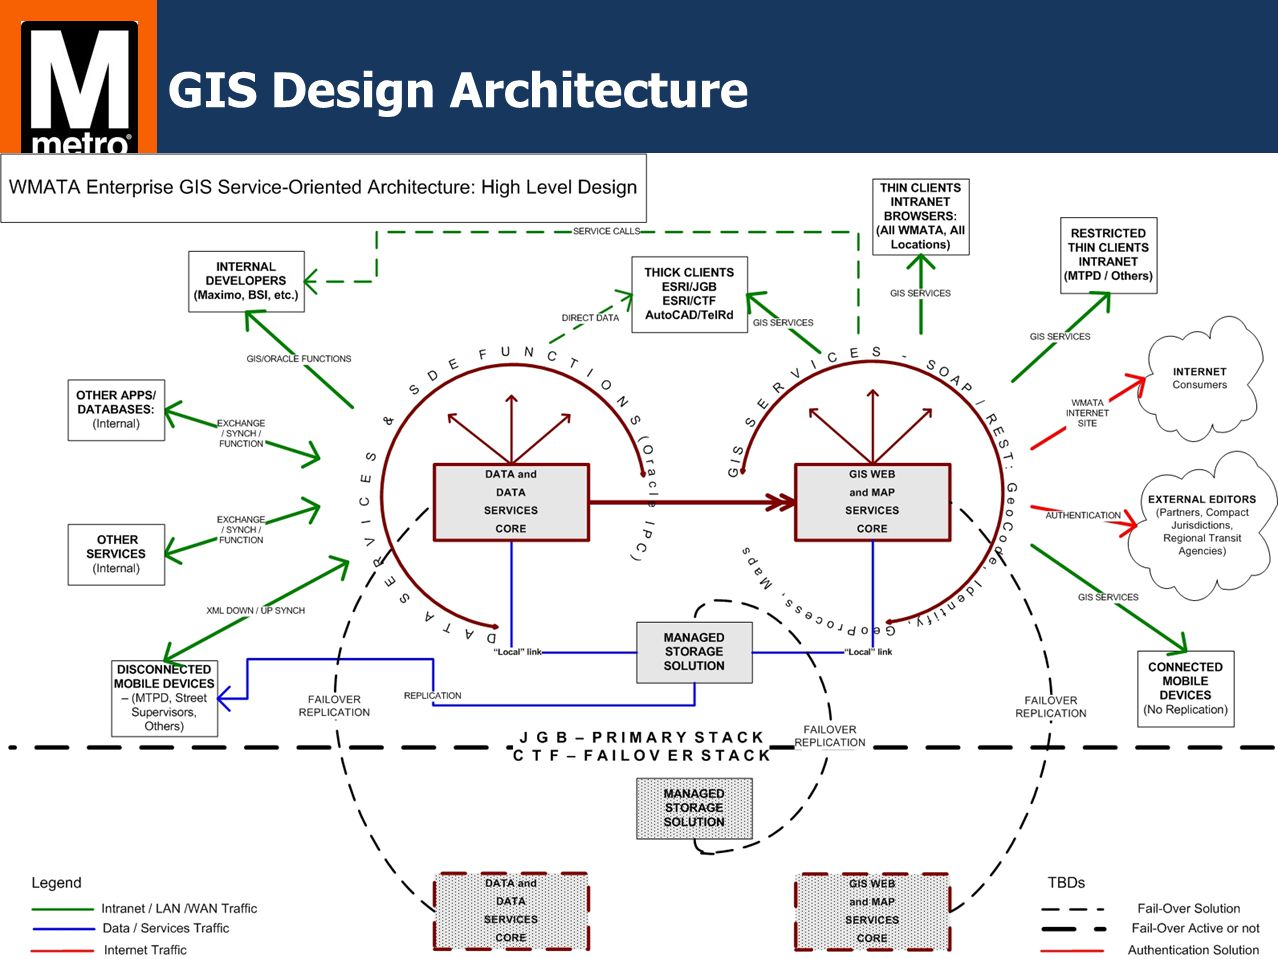 GIS Design Architecture